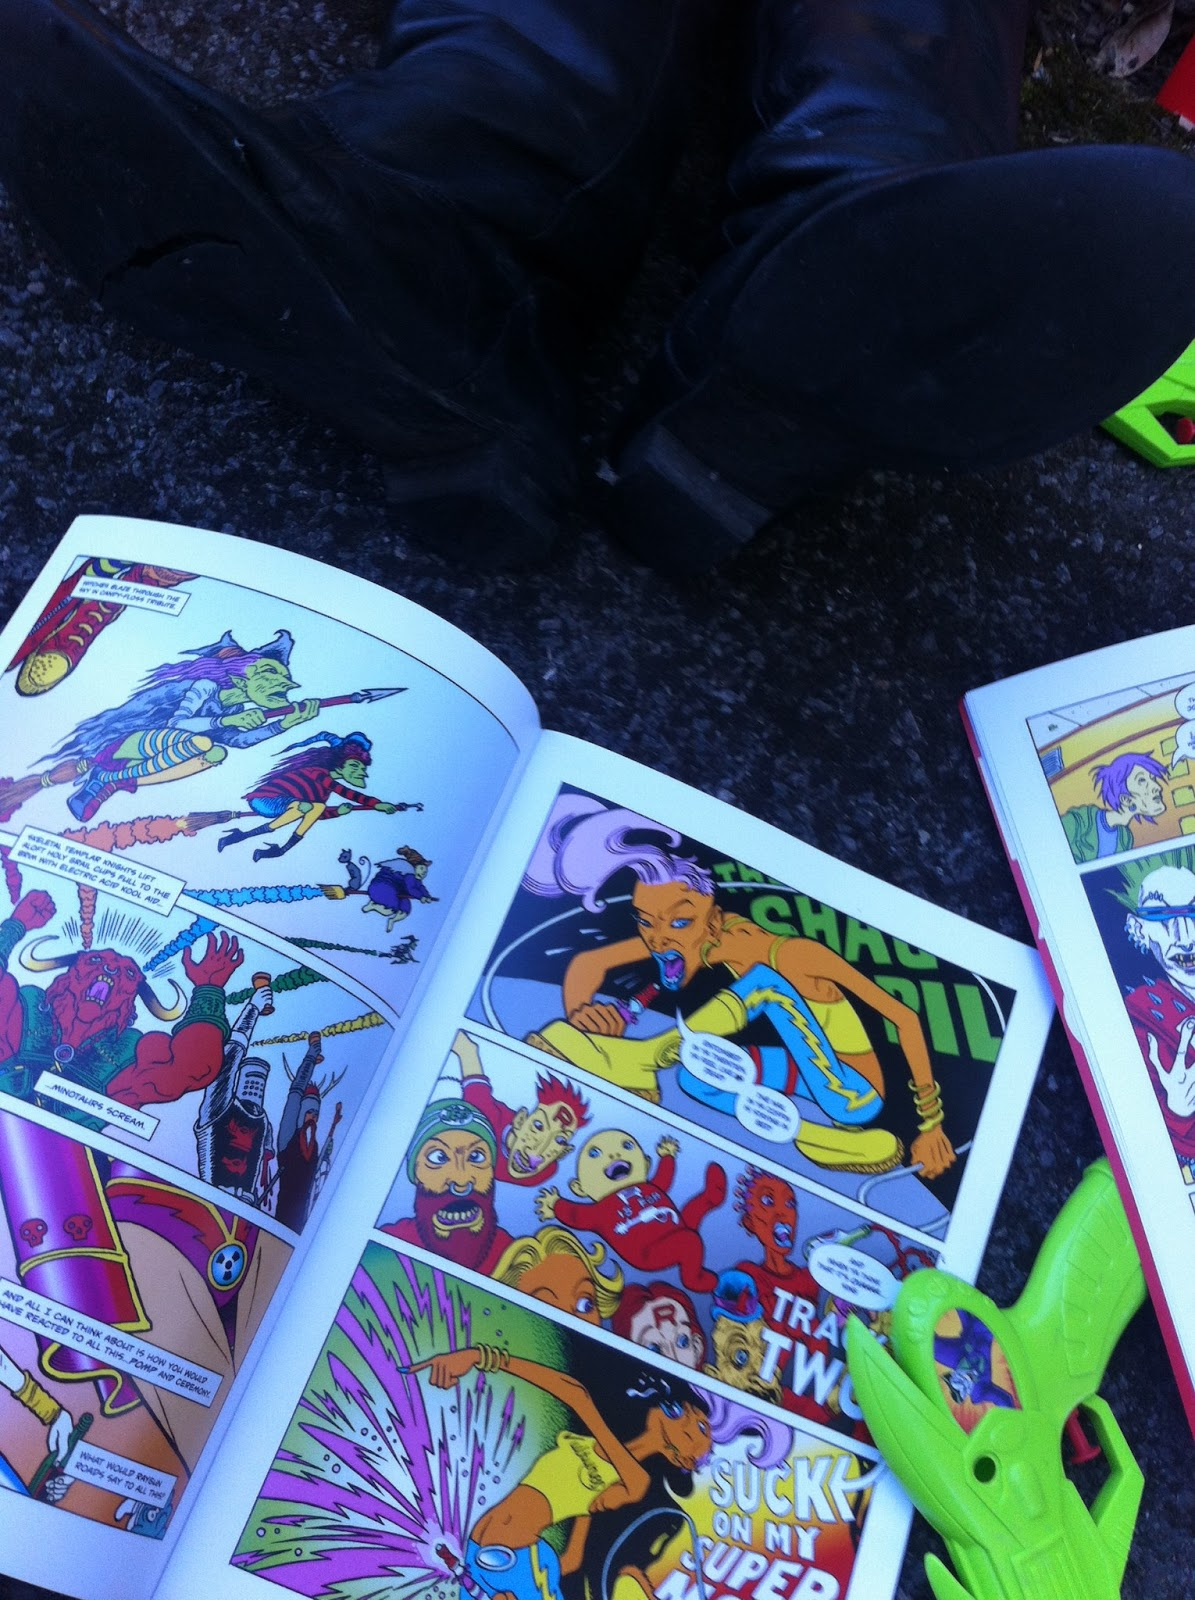 Raygun Roads project gets set for full launch at Lakes International Comic Art Festival